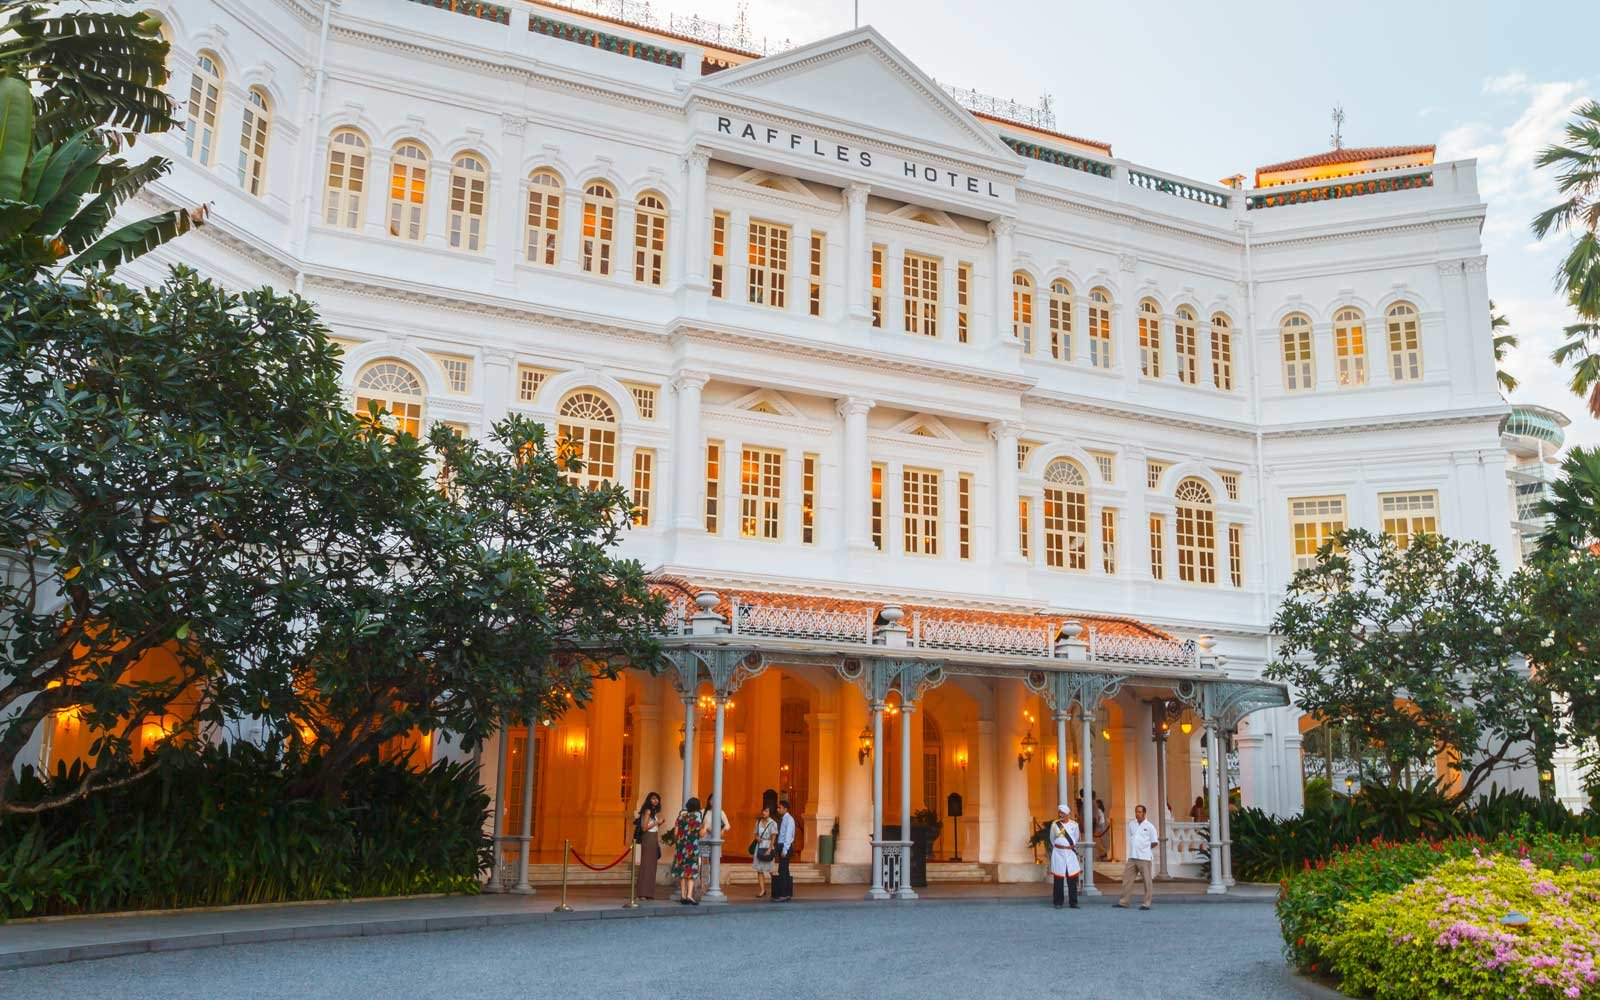 Exterior of the Raffles Hotel, in Singapore